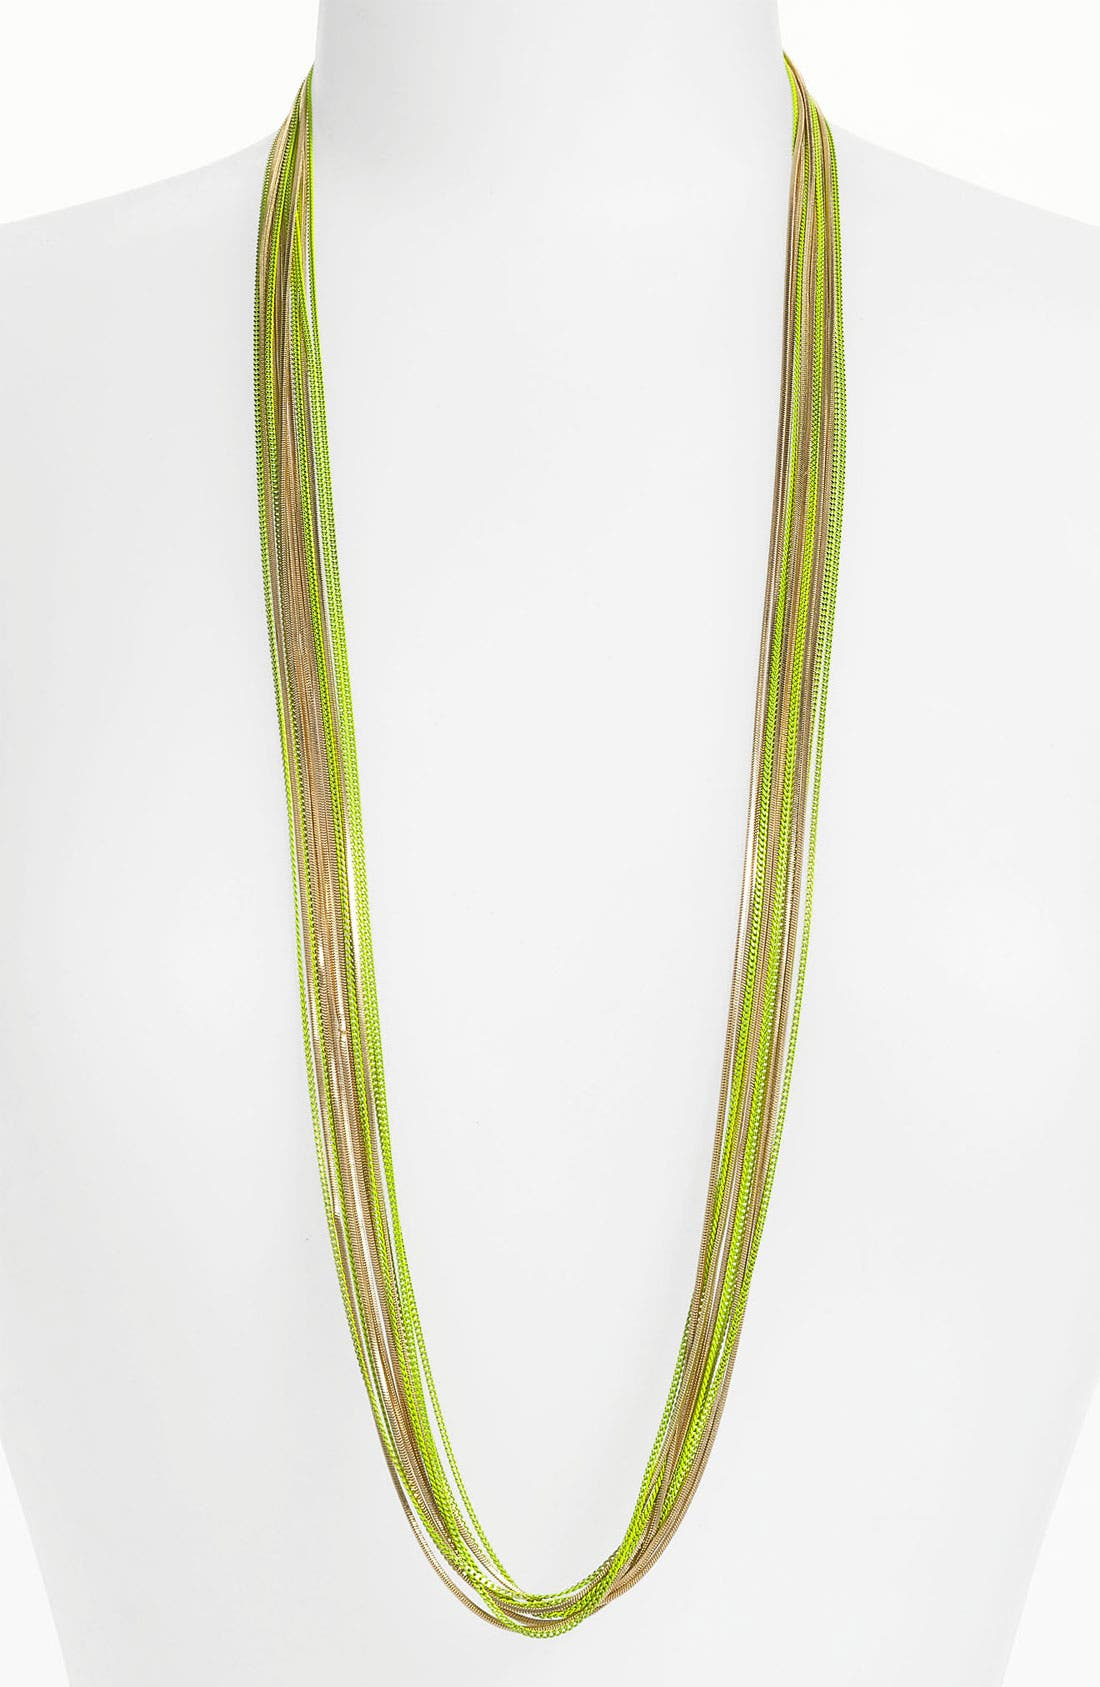 Long Multistrand Necklace,                             Main thumbnail 1, color,                             Neon Yellow/ Gold